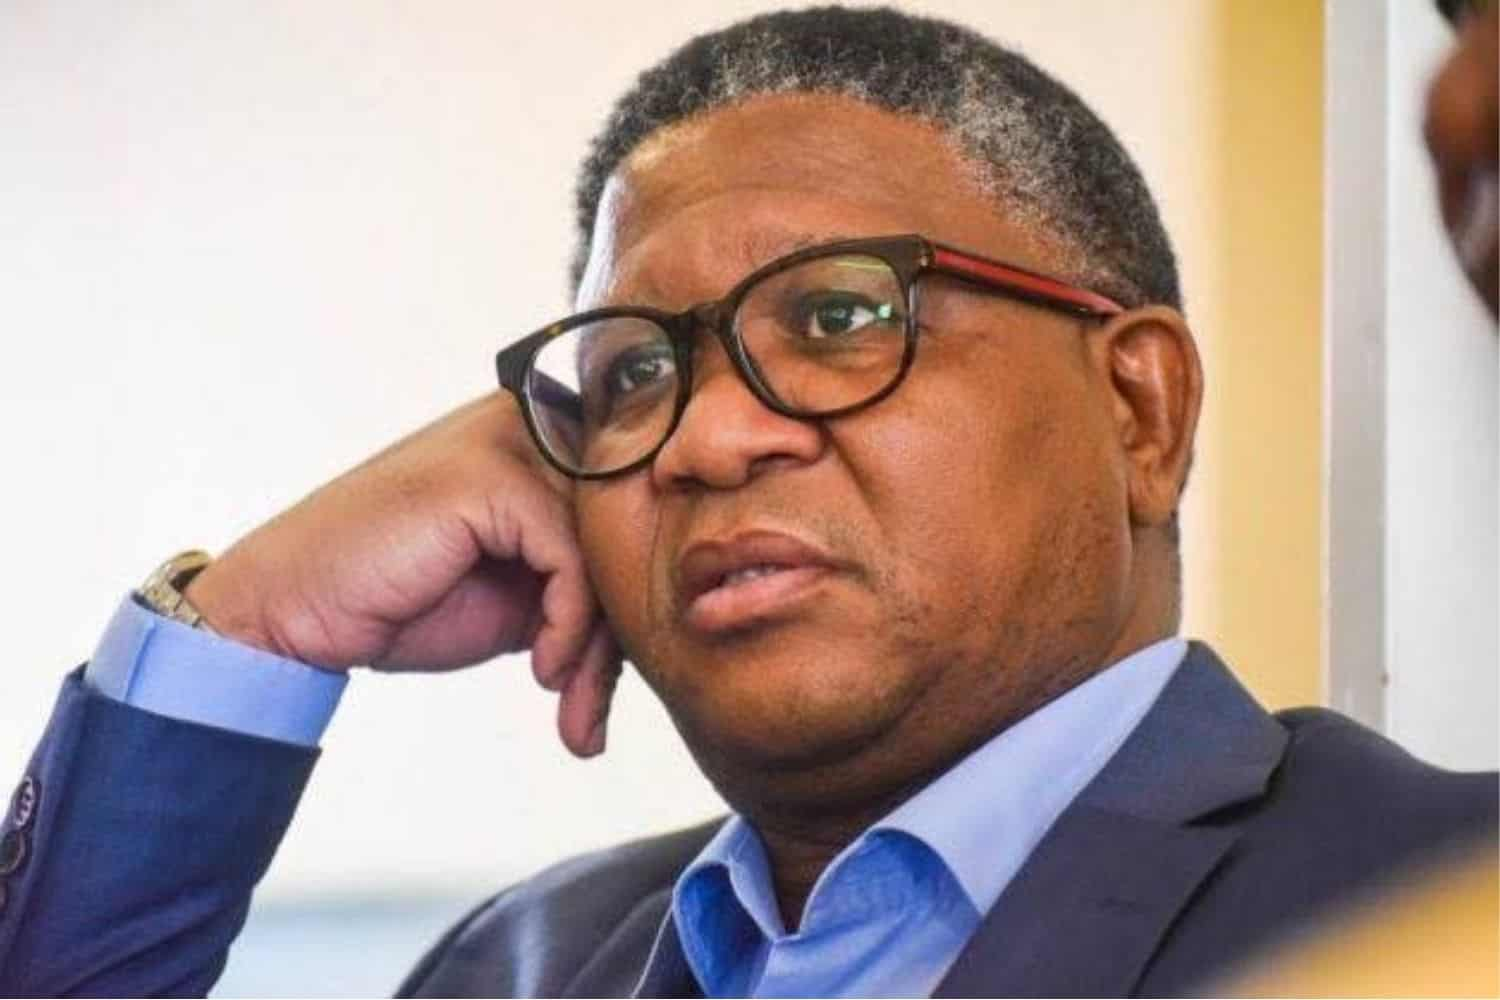 ANC slams report about Mbalula's 'R50m' budget as 'sensational' - The Citizen